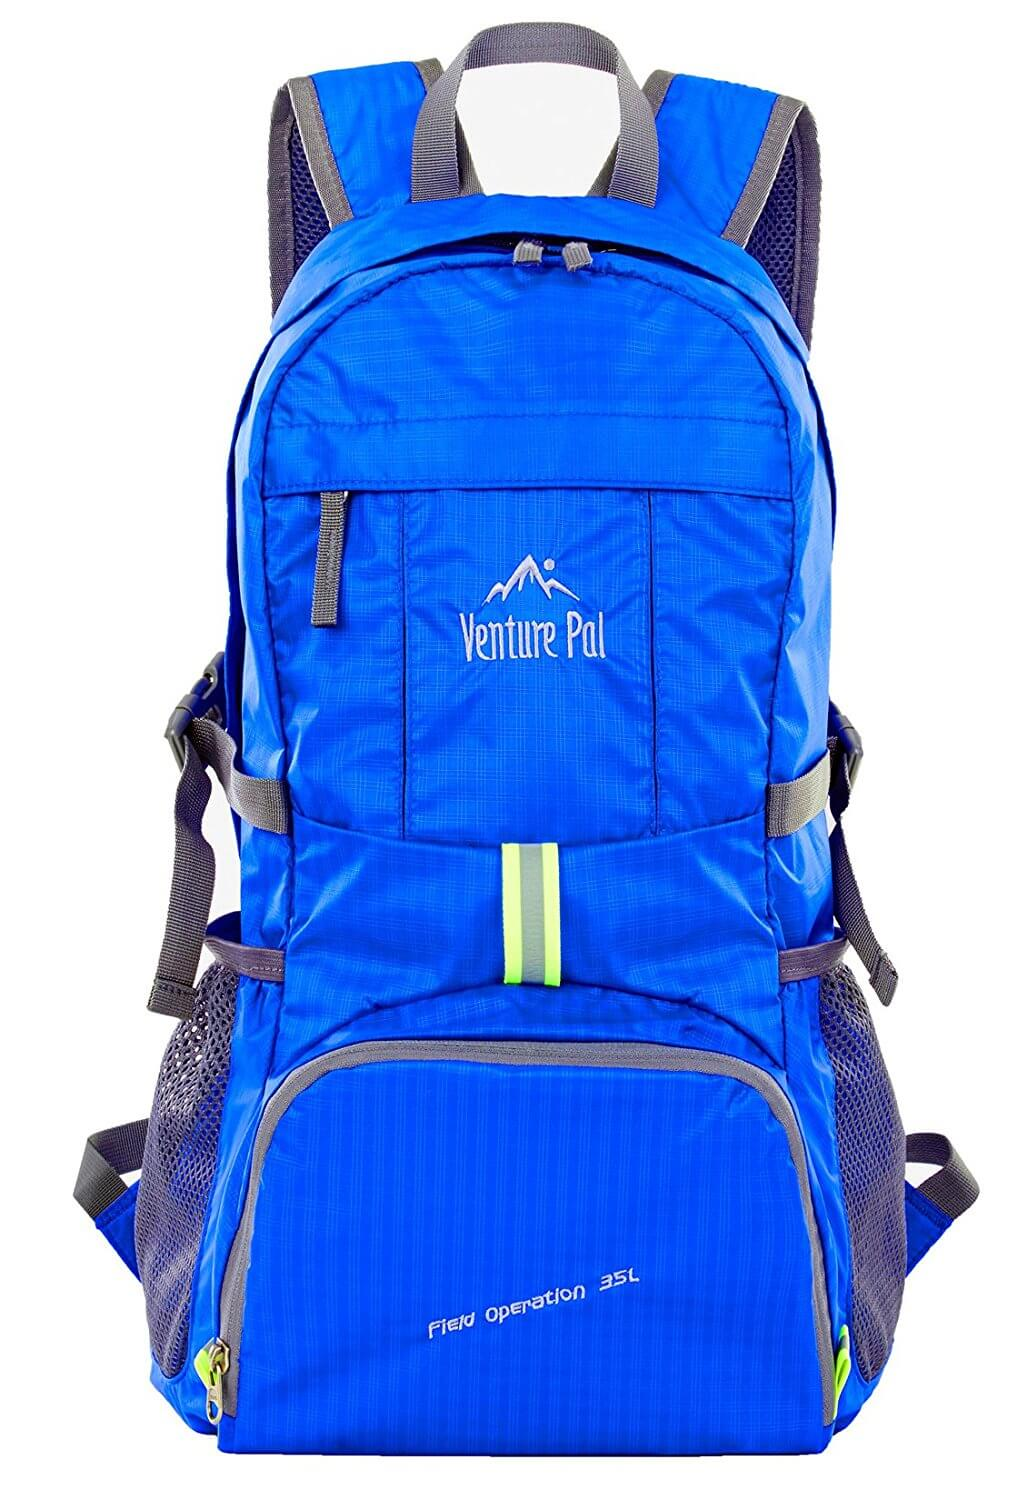 8bea9ae665 Venture Pal Lightweight Packable Daypack Review